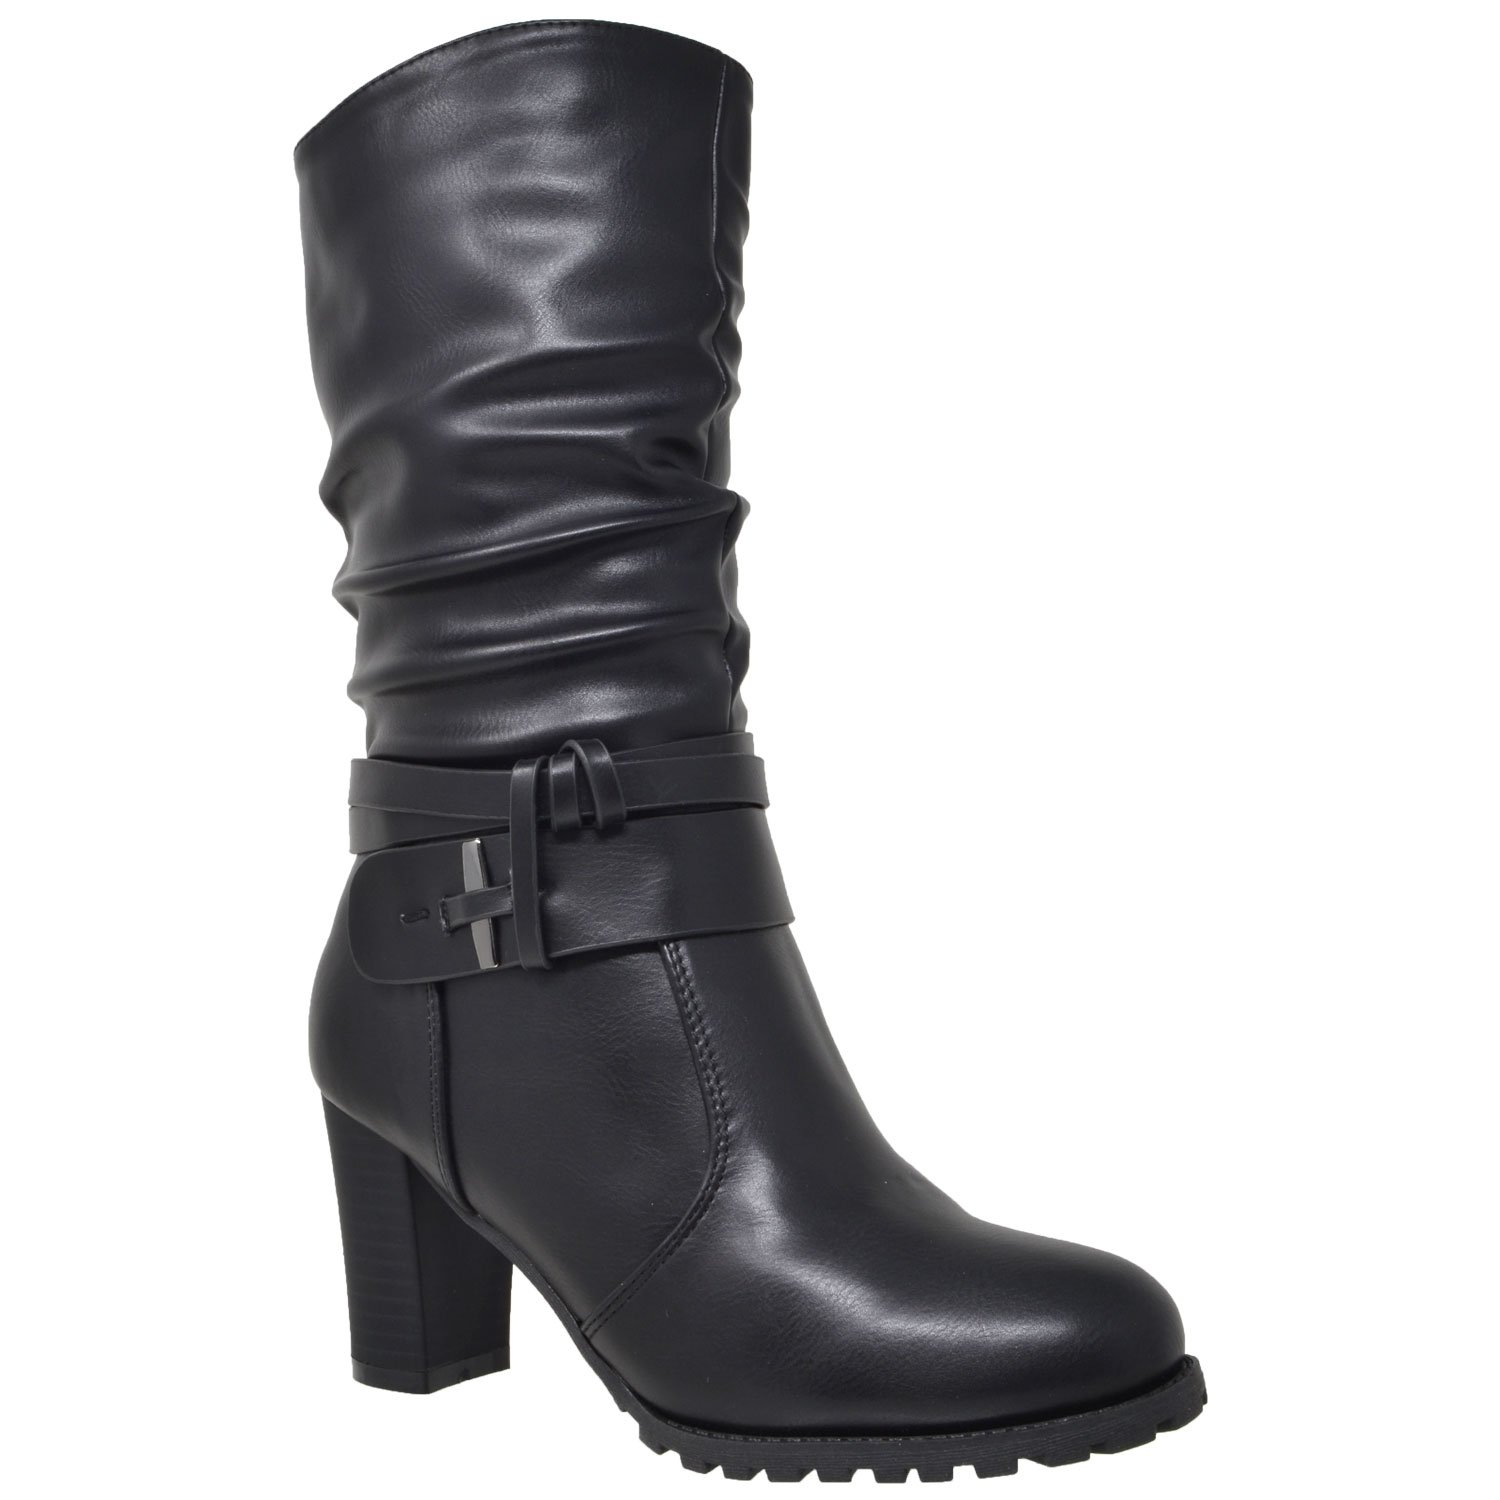 Generation Y Womens Mid Calf Boots Faux Leather Ruched Strappy Stacked Block Heel Shoes Black SZ 6